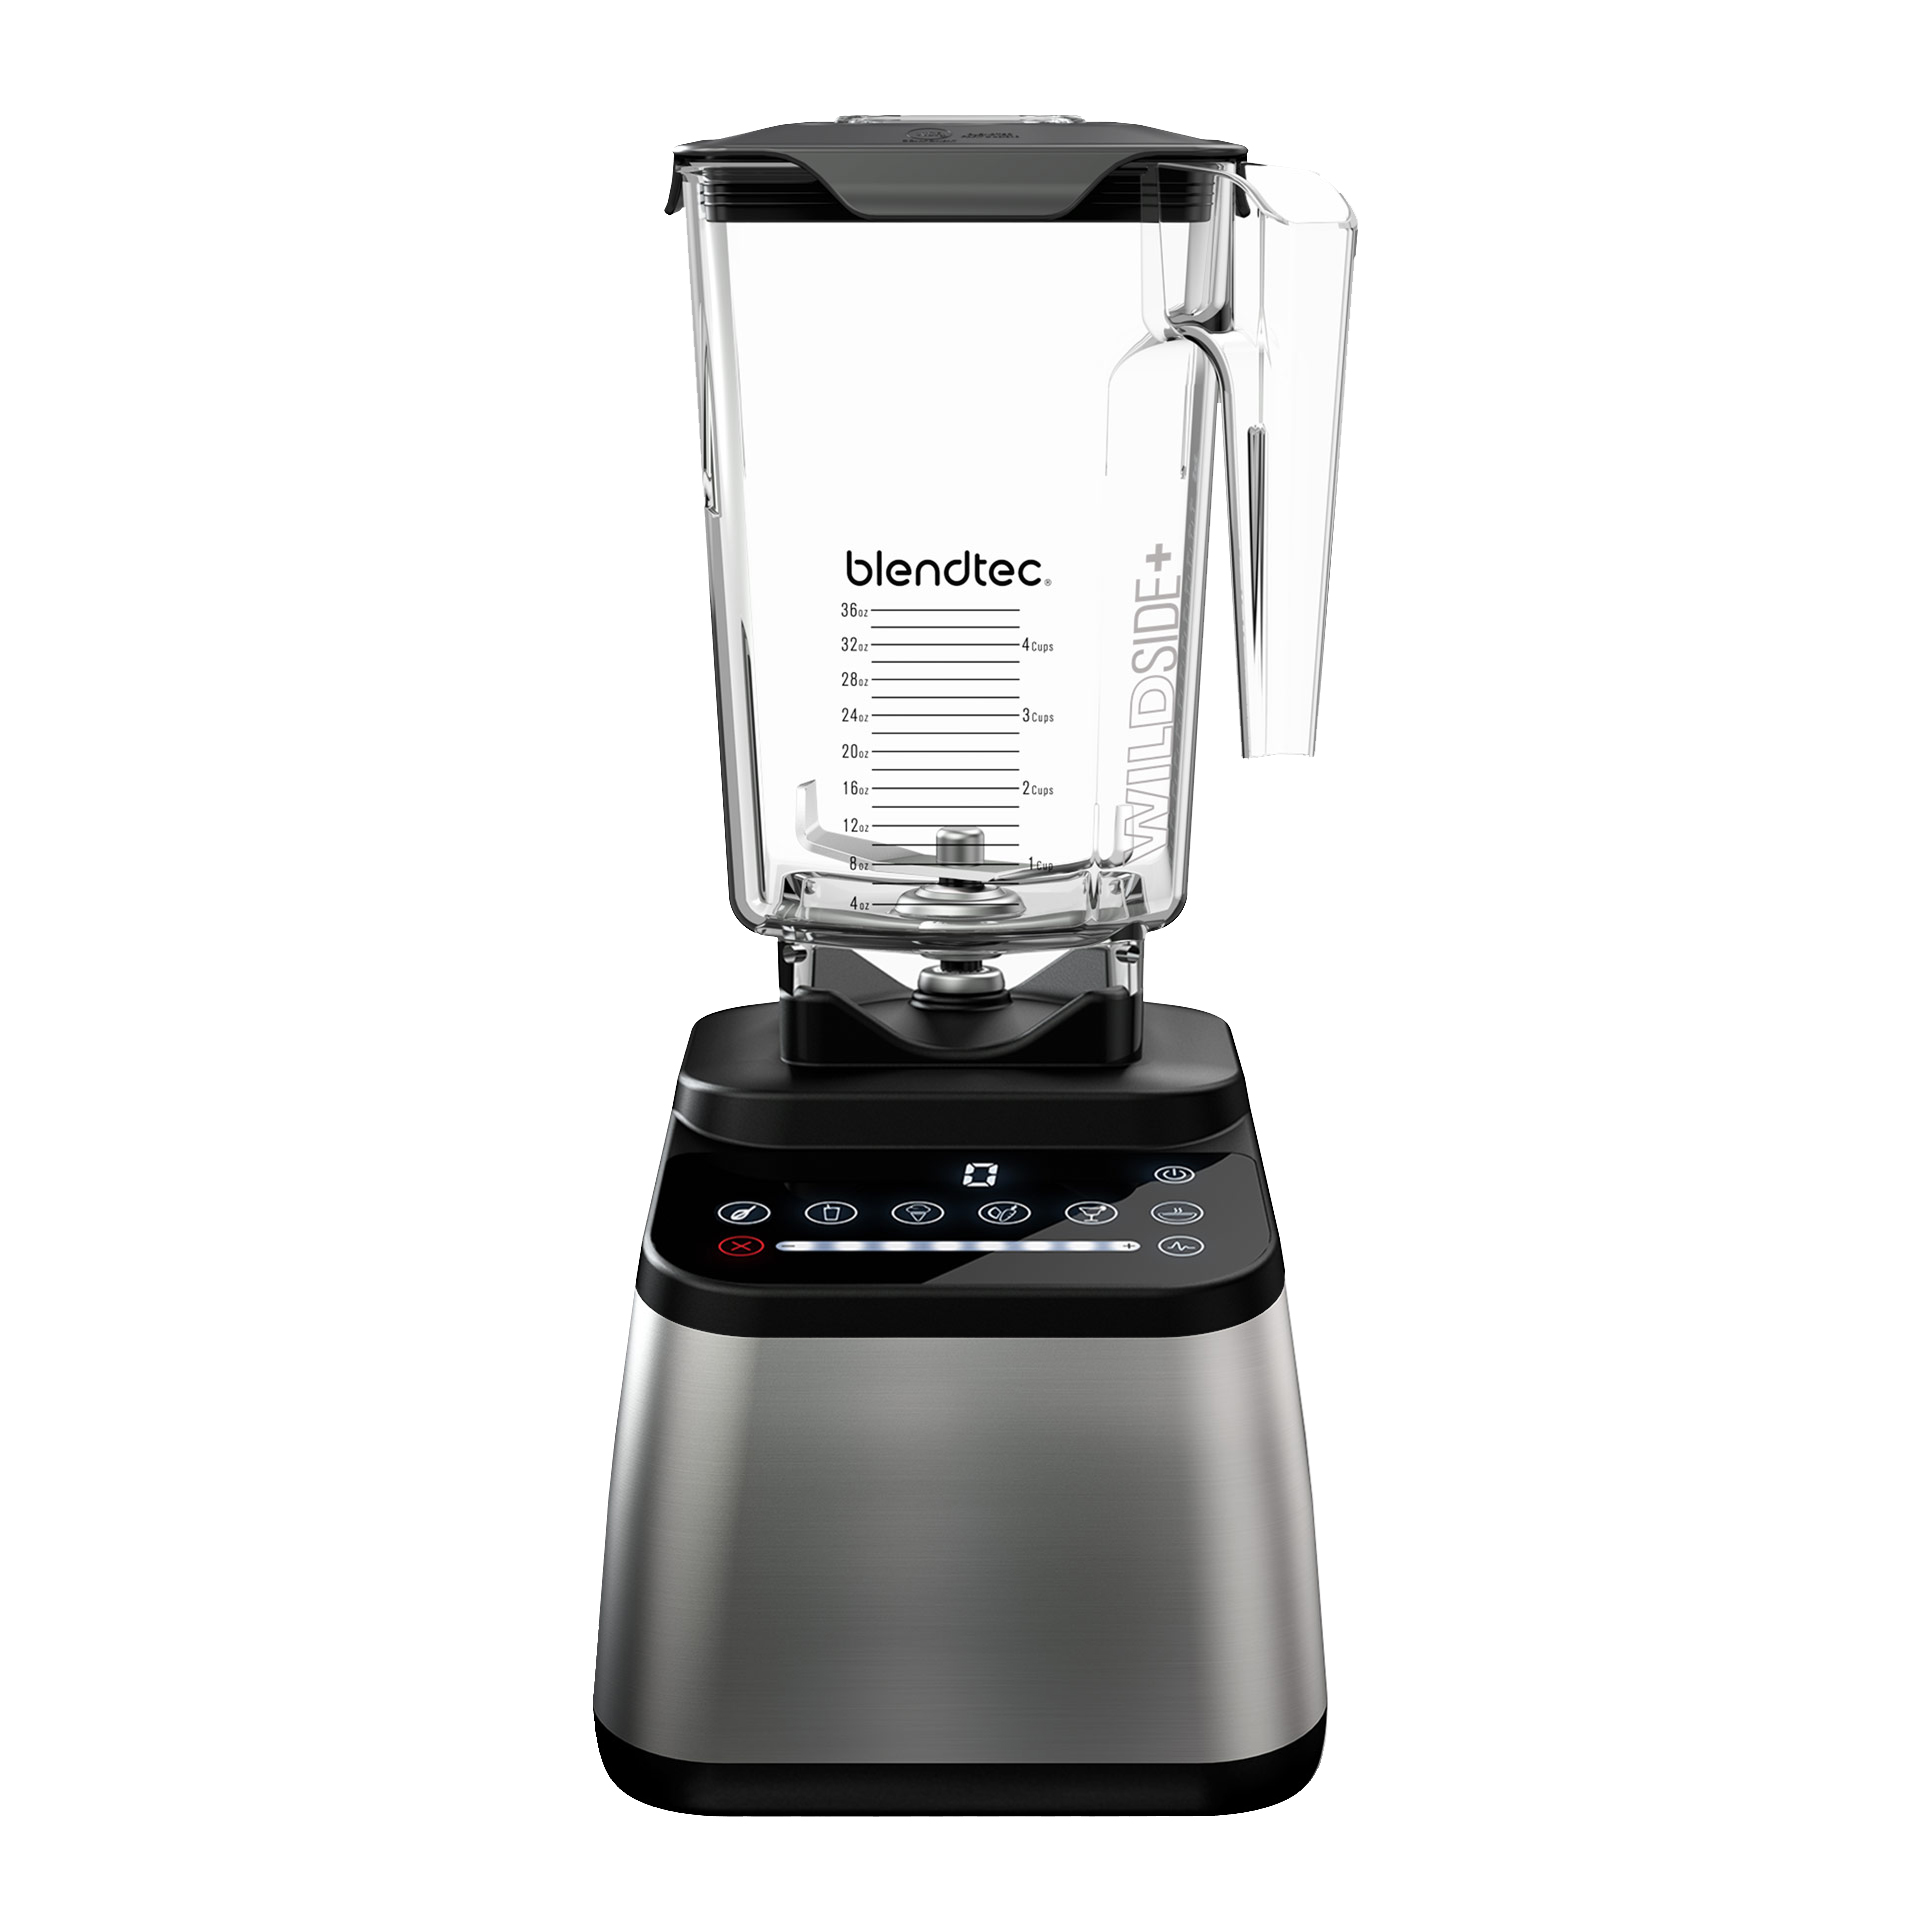 Blendtec Designer 650 Mixer in Silber